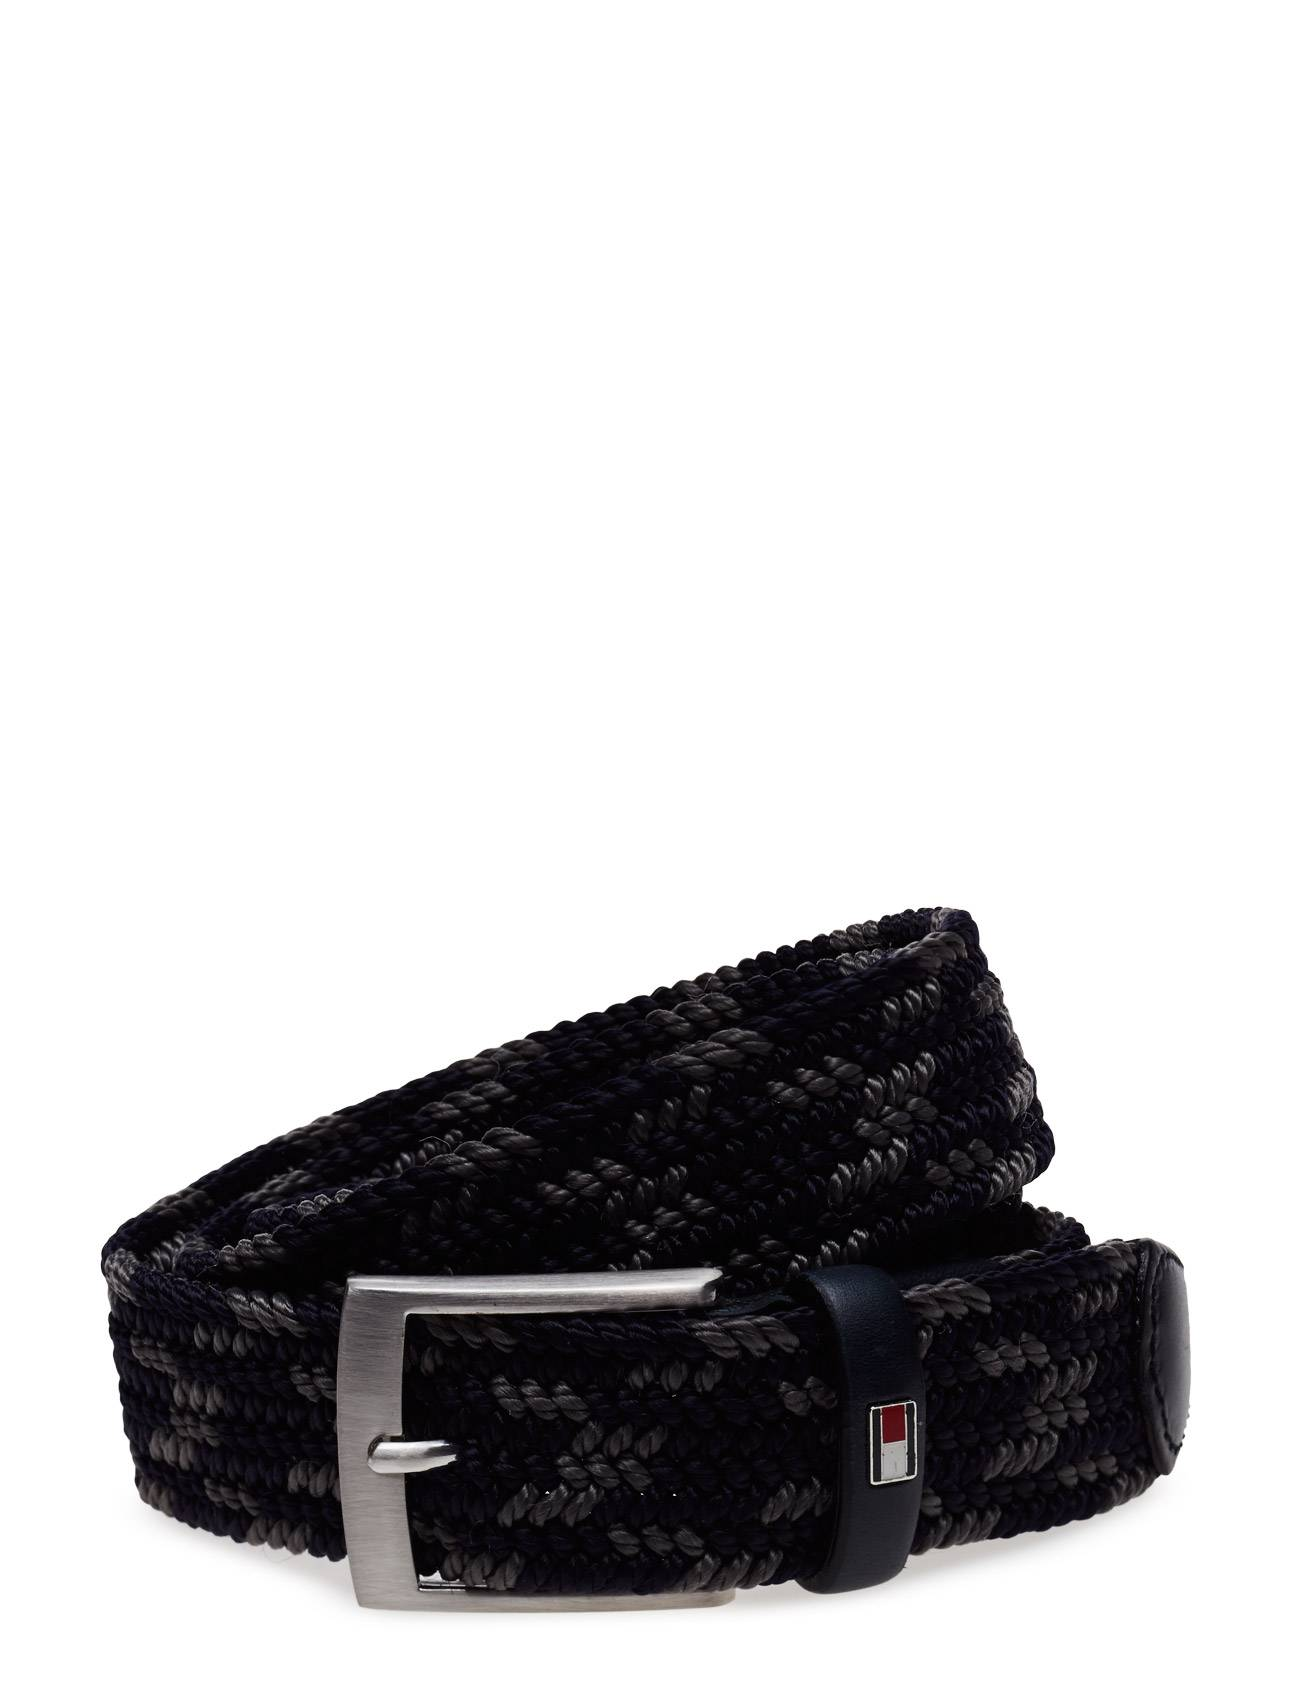 Tommy Hilfiger Adan Multi Belt 3.5